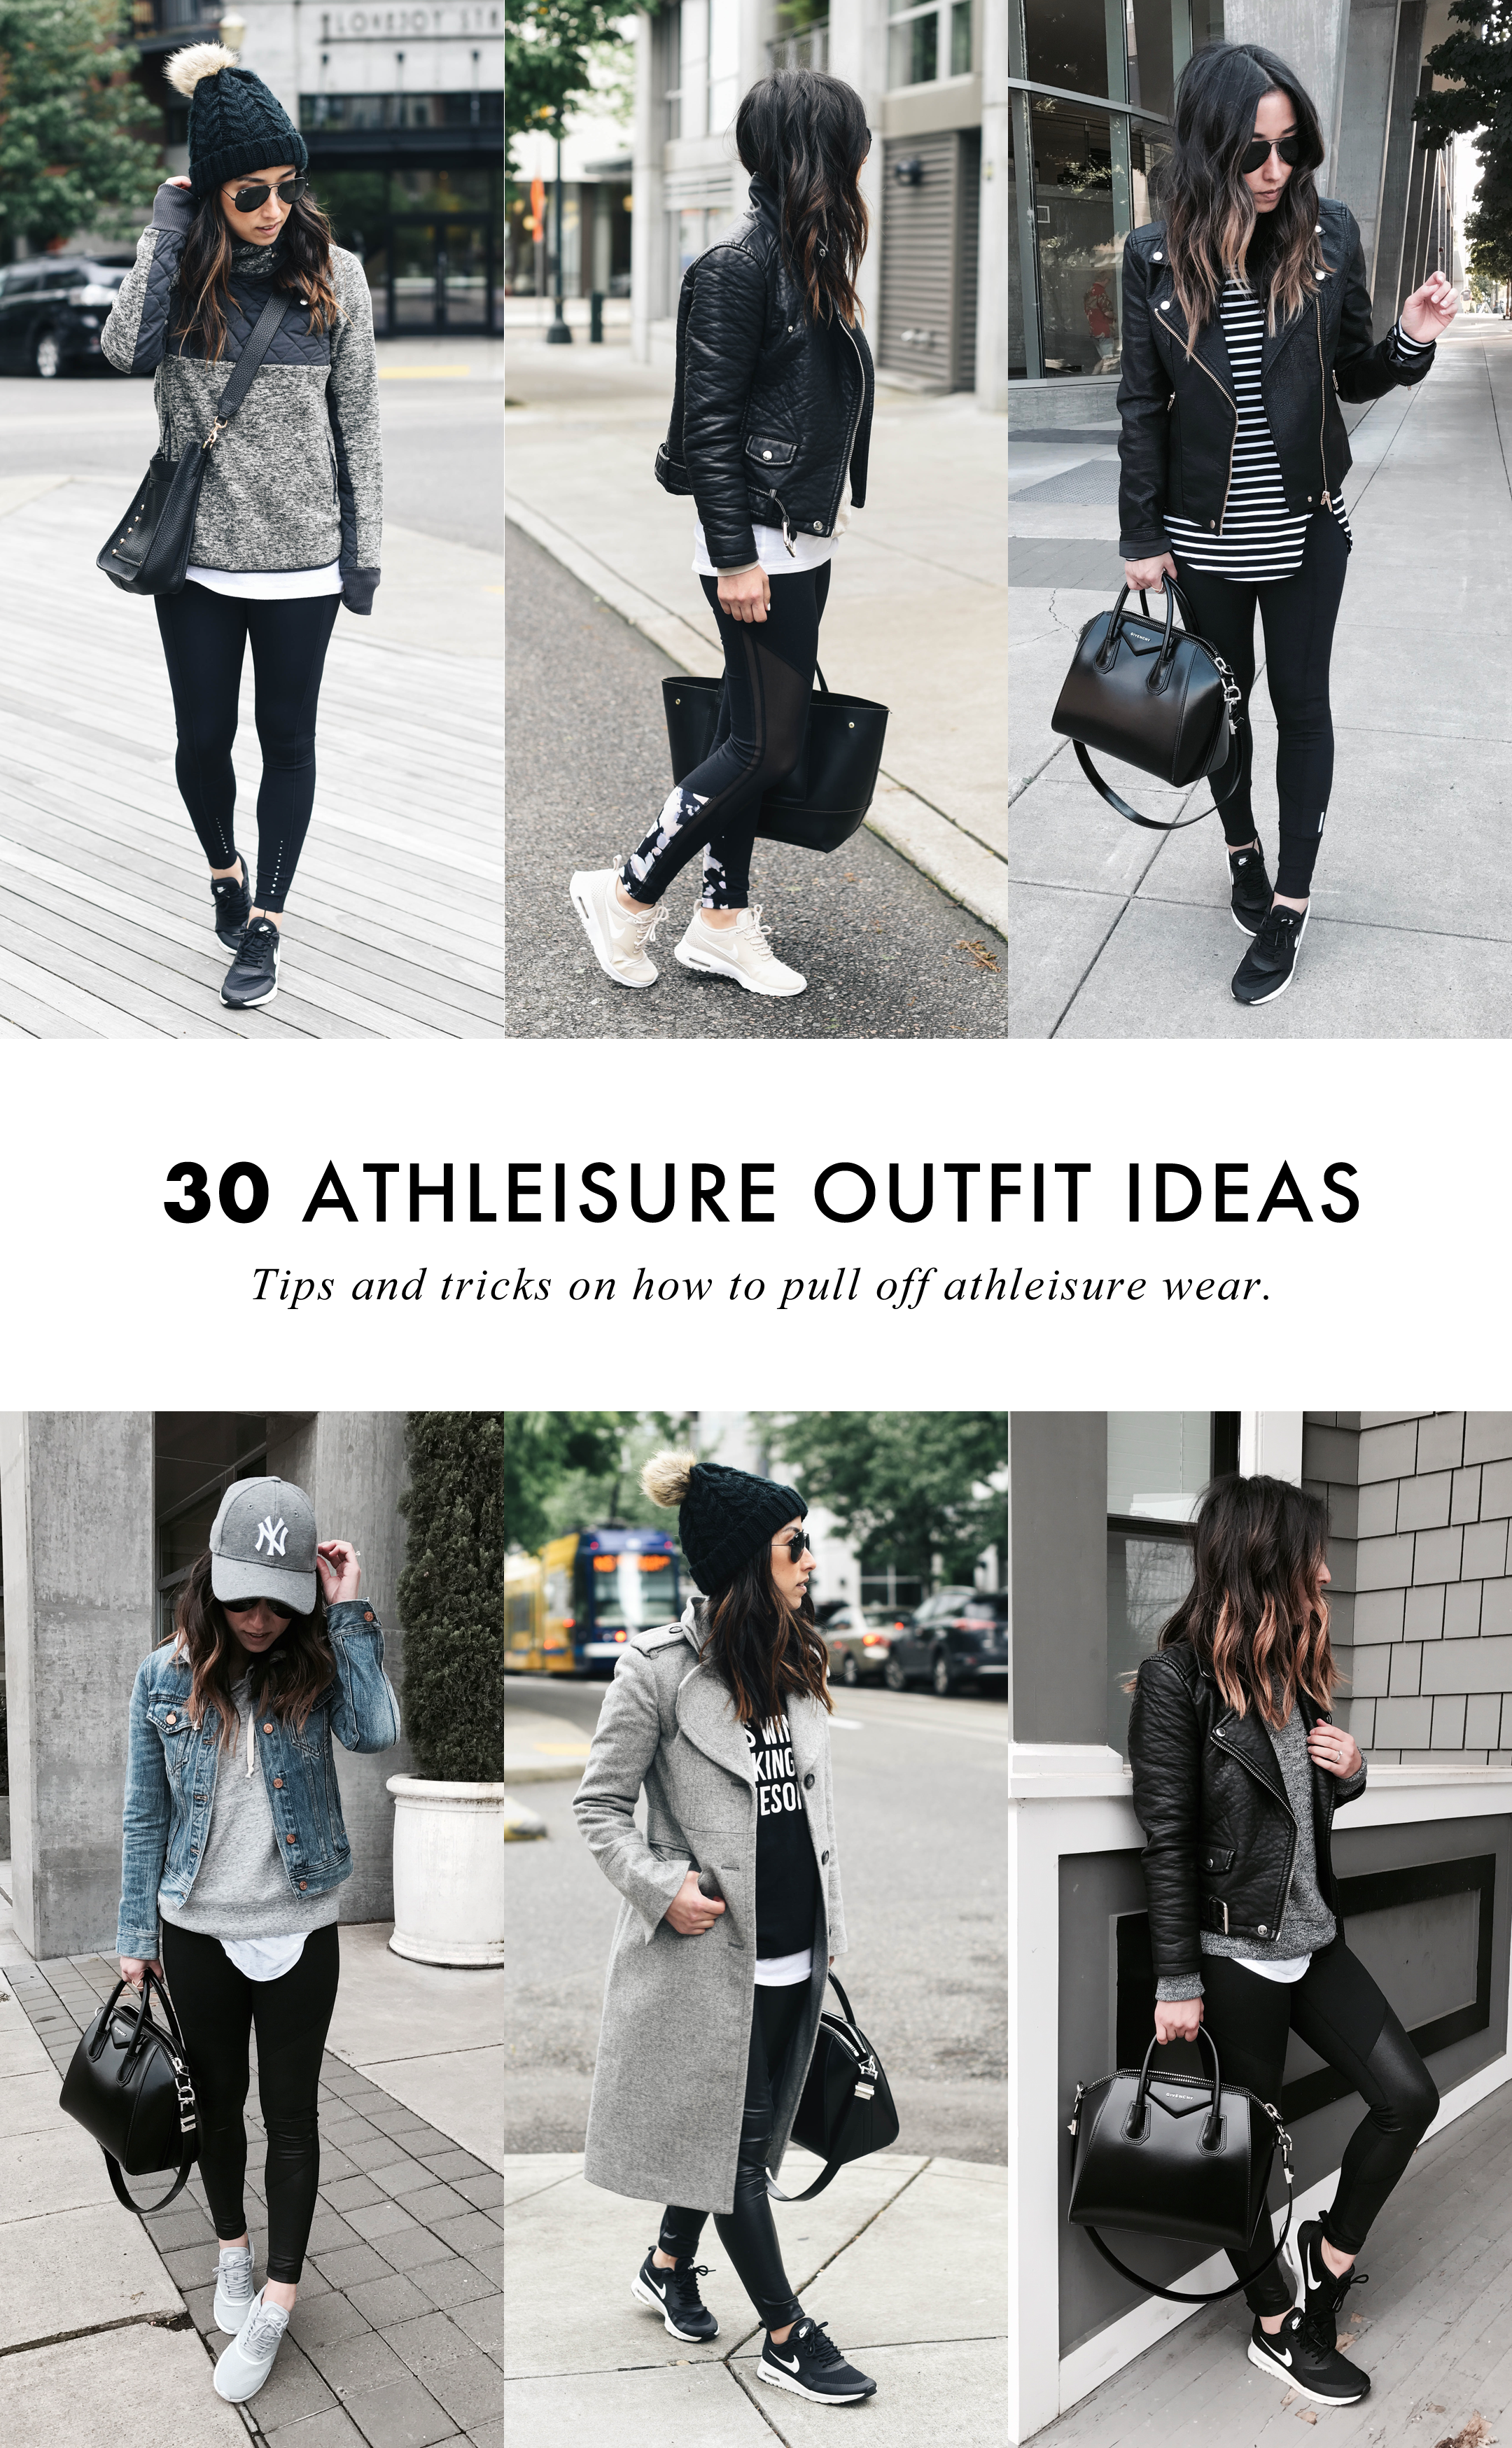 dc97a9a0cdb How To Pull Off Athleisure Wear + 30 Outfit Ideas - Crystalin Marie